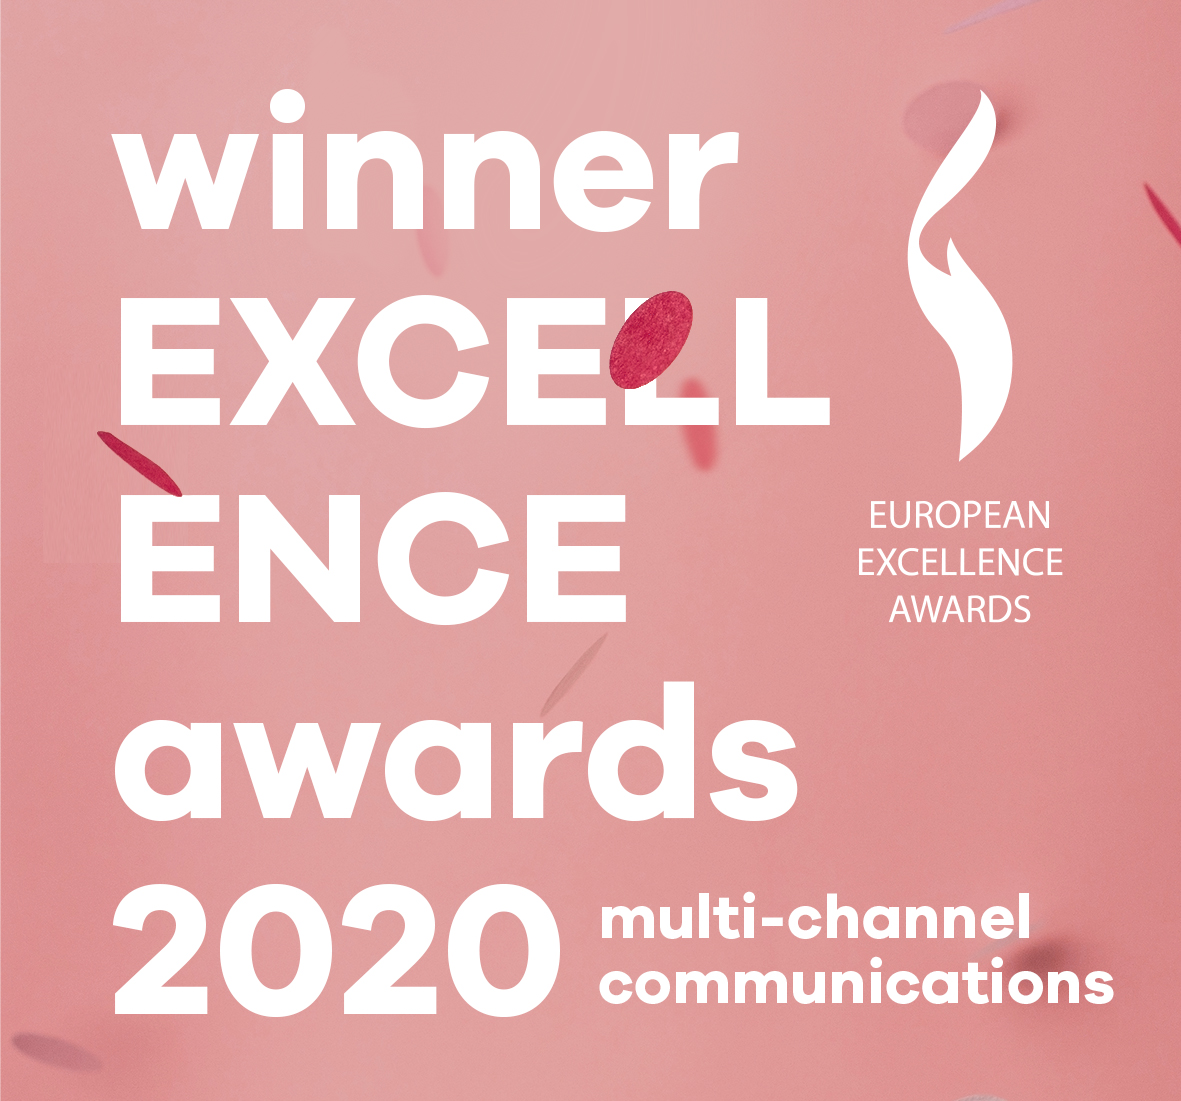 DEARDAN&Friends + BIJL PR winner European Excellence Awards 2020 for best case multi-channel communications